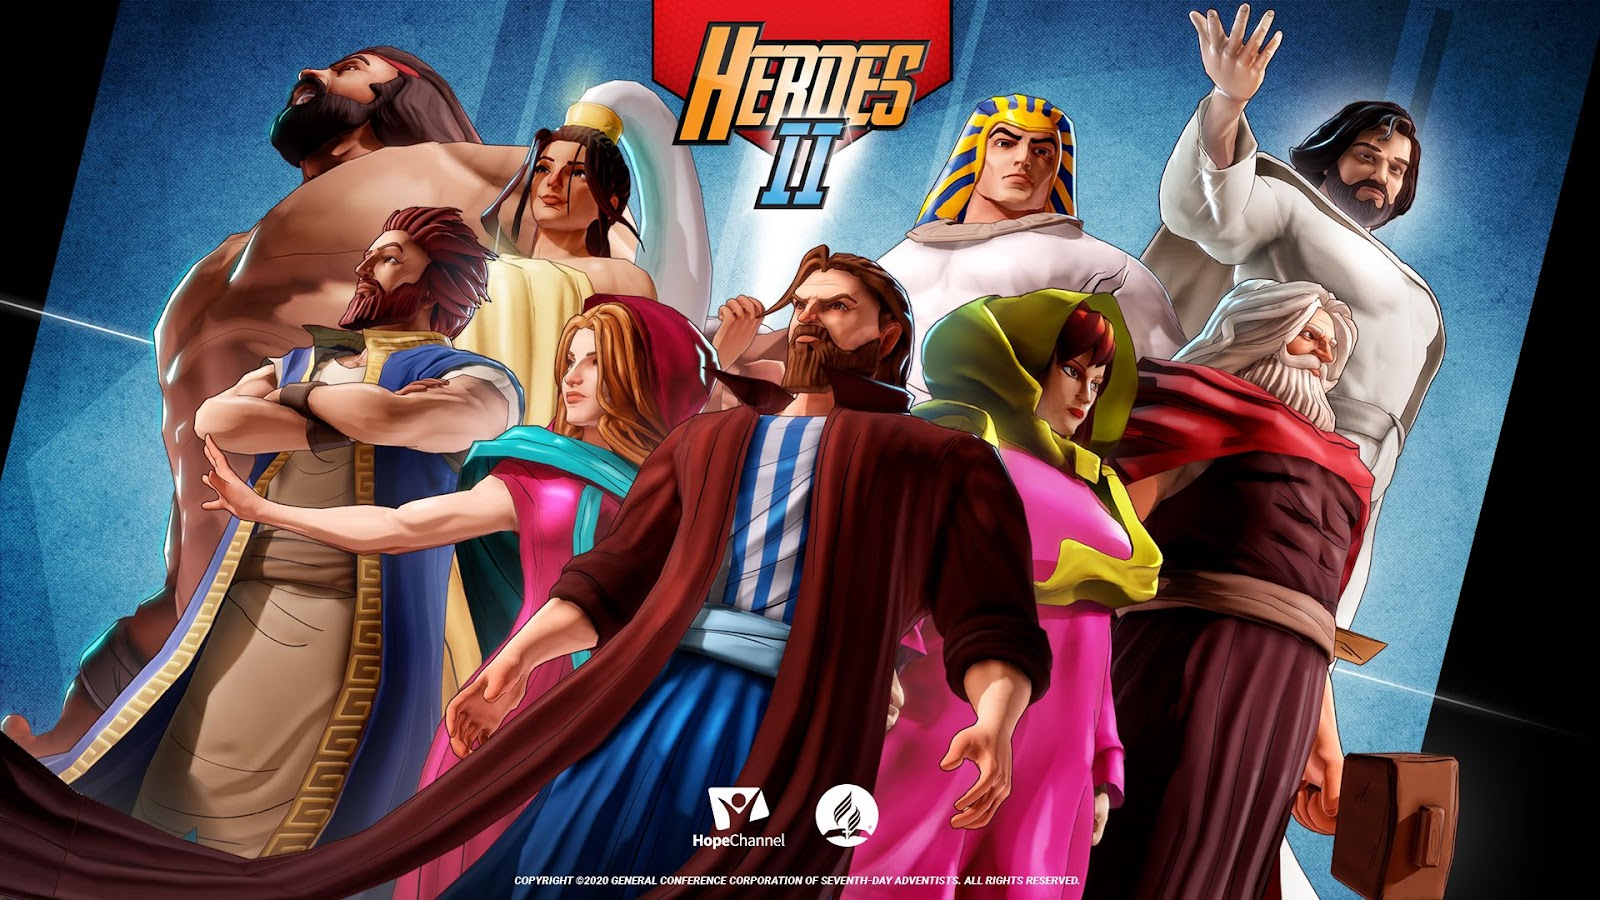 Rich results on Google's SERP when searching for any Bible game like Heroes 2: The Bible Trivia Game.